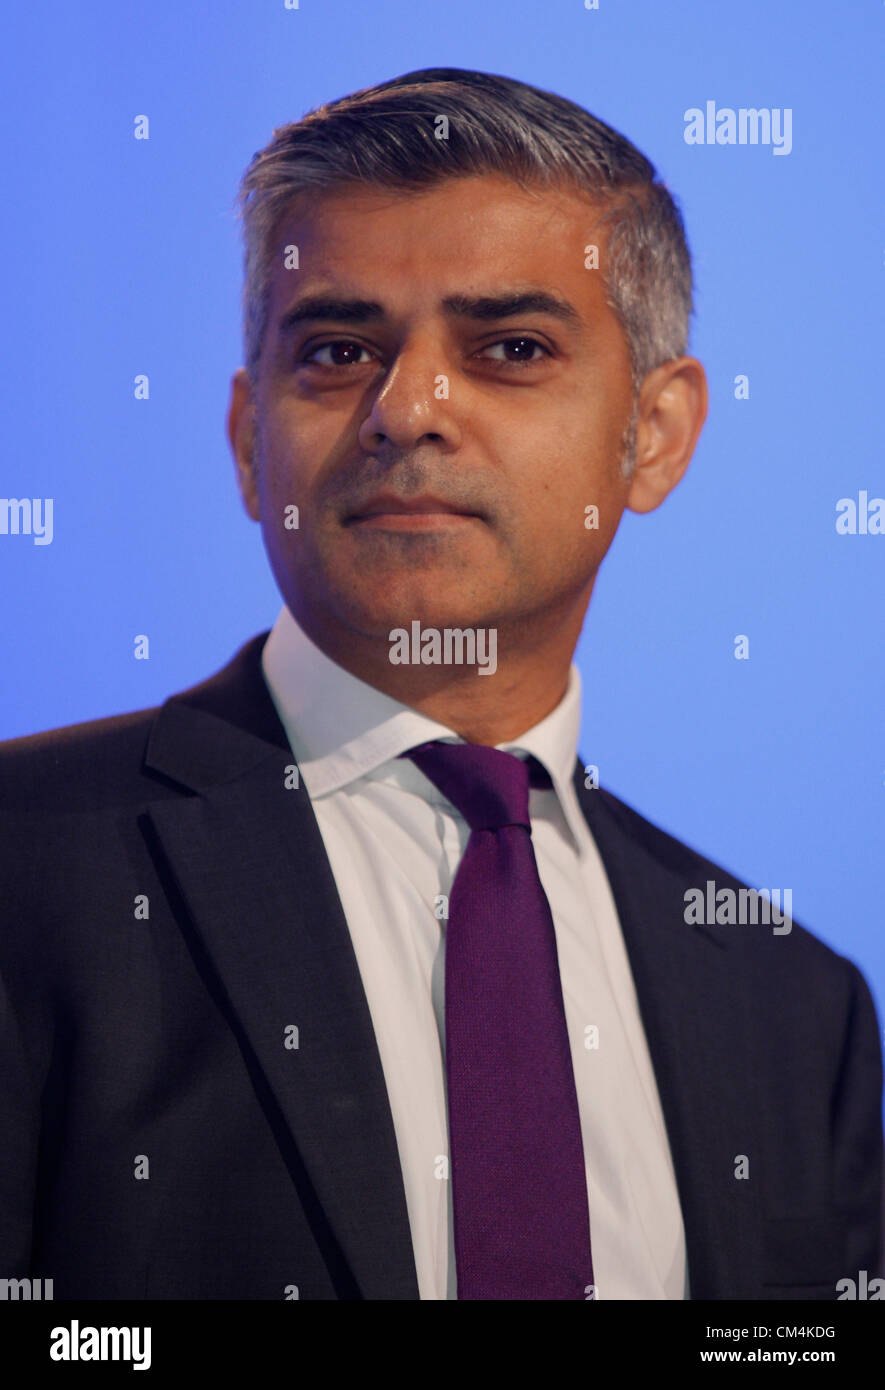 SADIQ KHAN MP SHADOW LORD CHANCELLOR AND SEC 03 October 2012 MANCHESTER CENTRAL MANCHESTER  ENGLAND Stock Photo